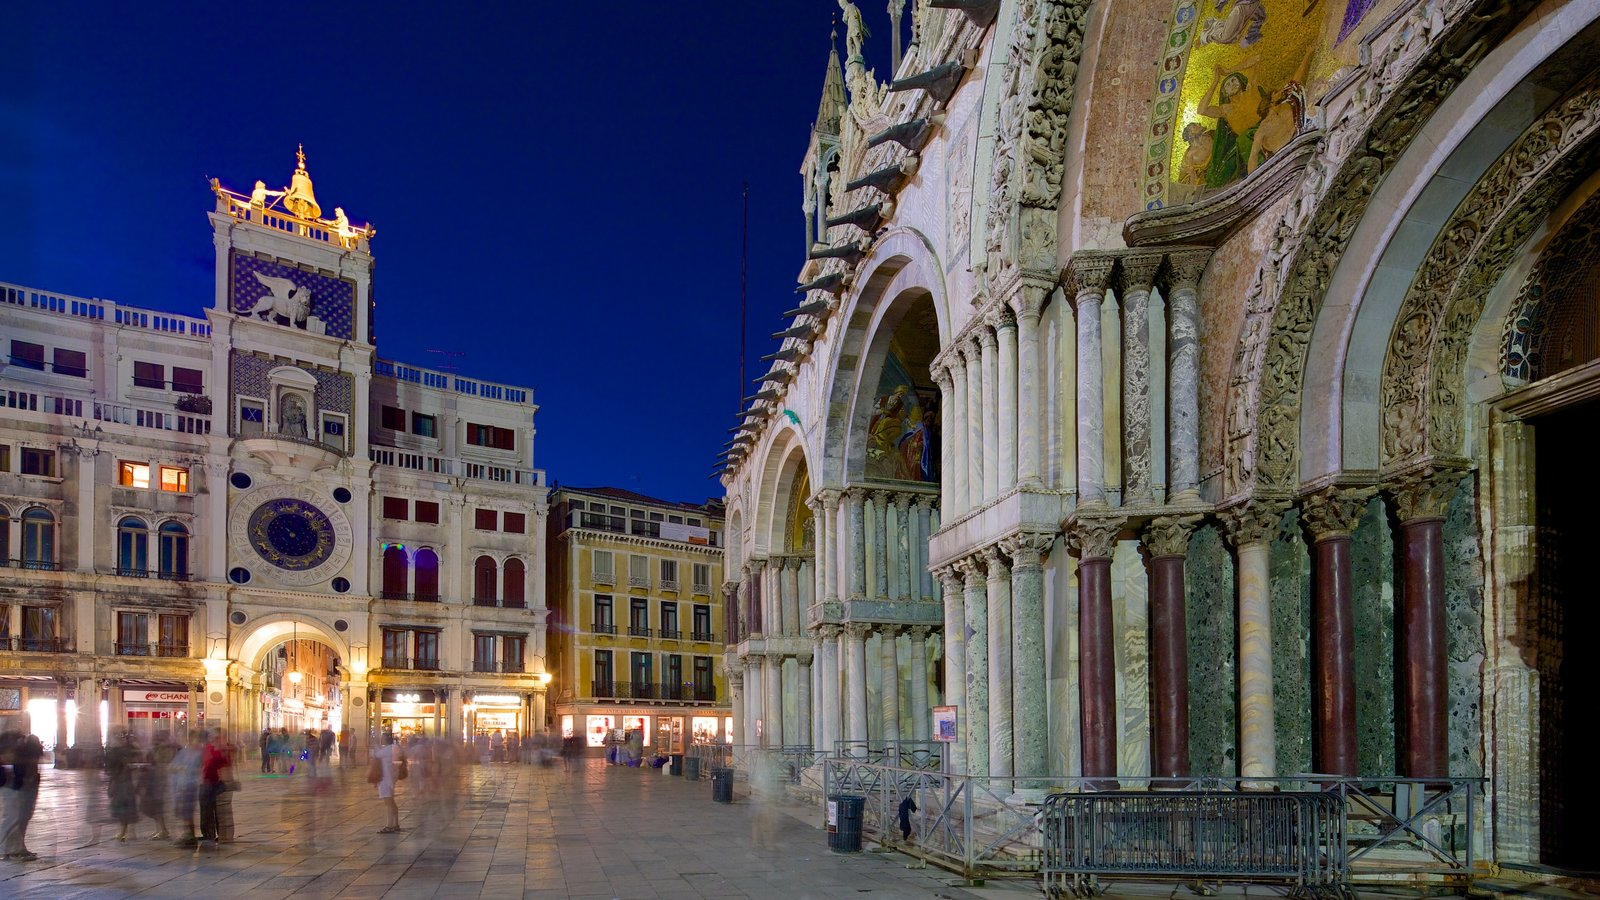 St. Mark\'s Basilica showing a square or plaza, night scenes and heritage architecture